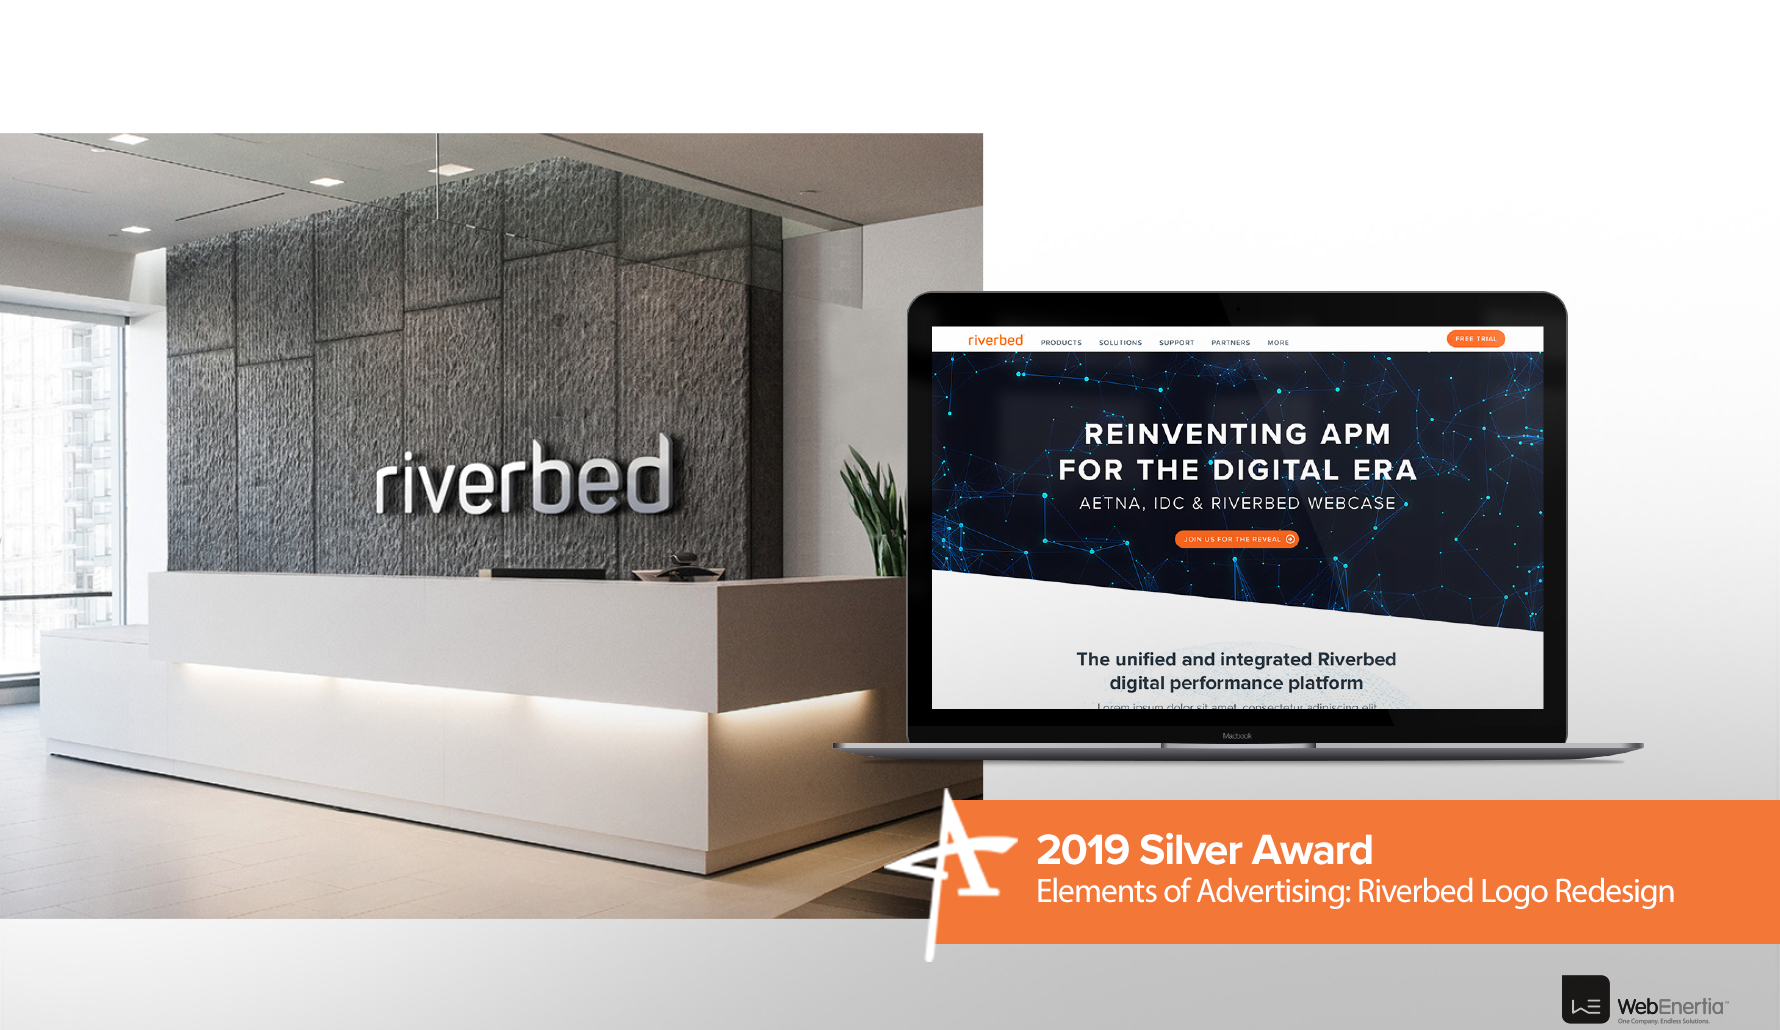 2019 Silver Addy Award - Elements of Advertising: Riverbed Logo Redesign